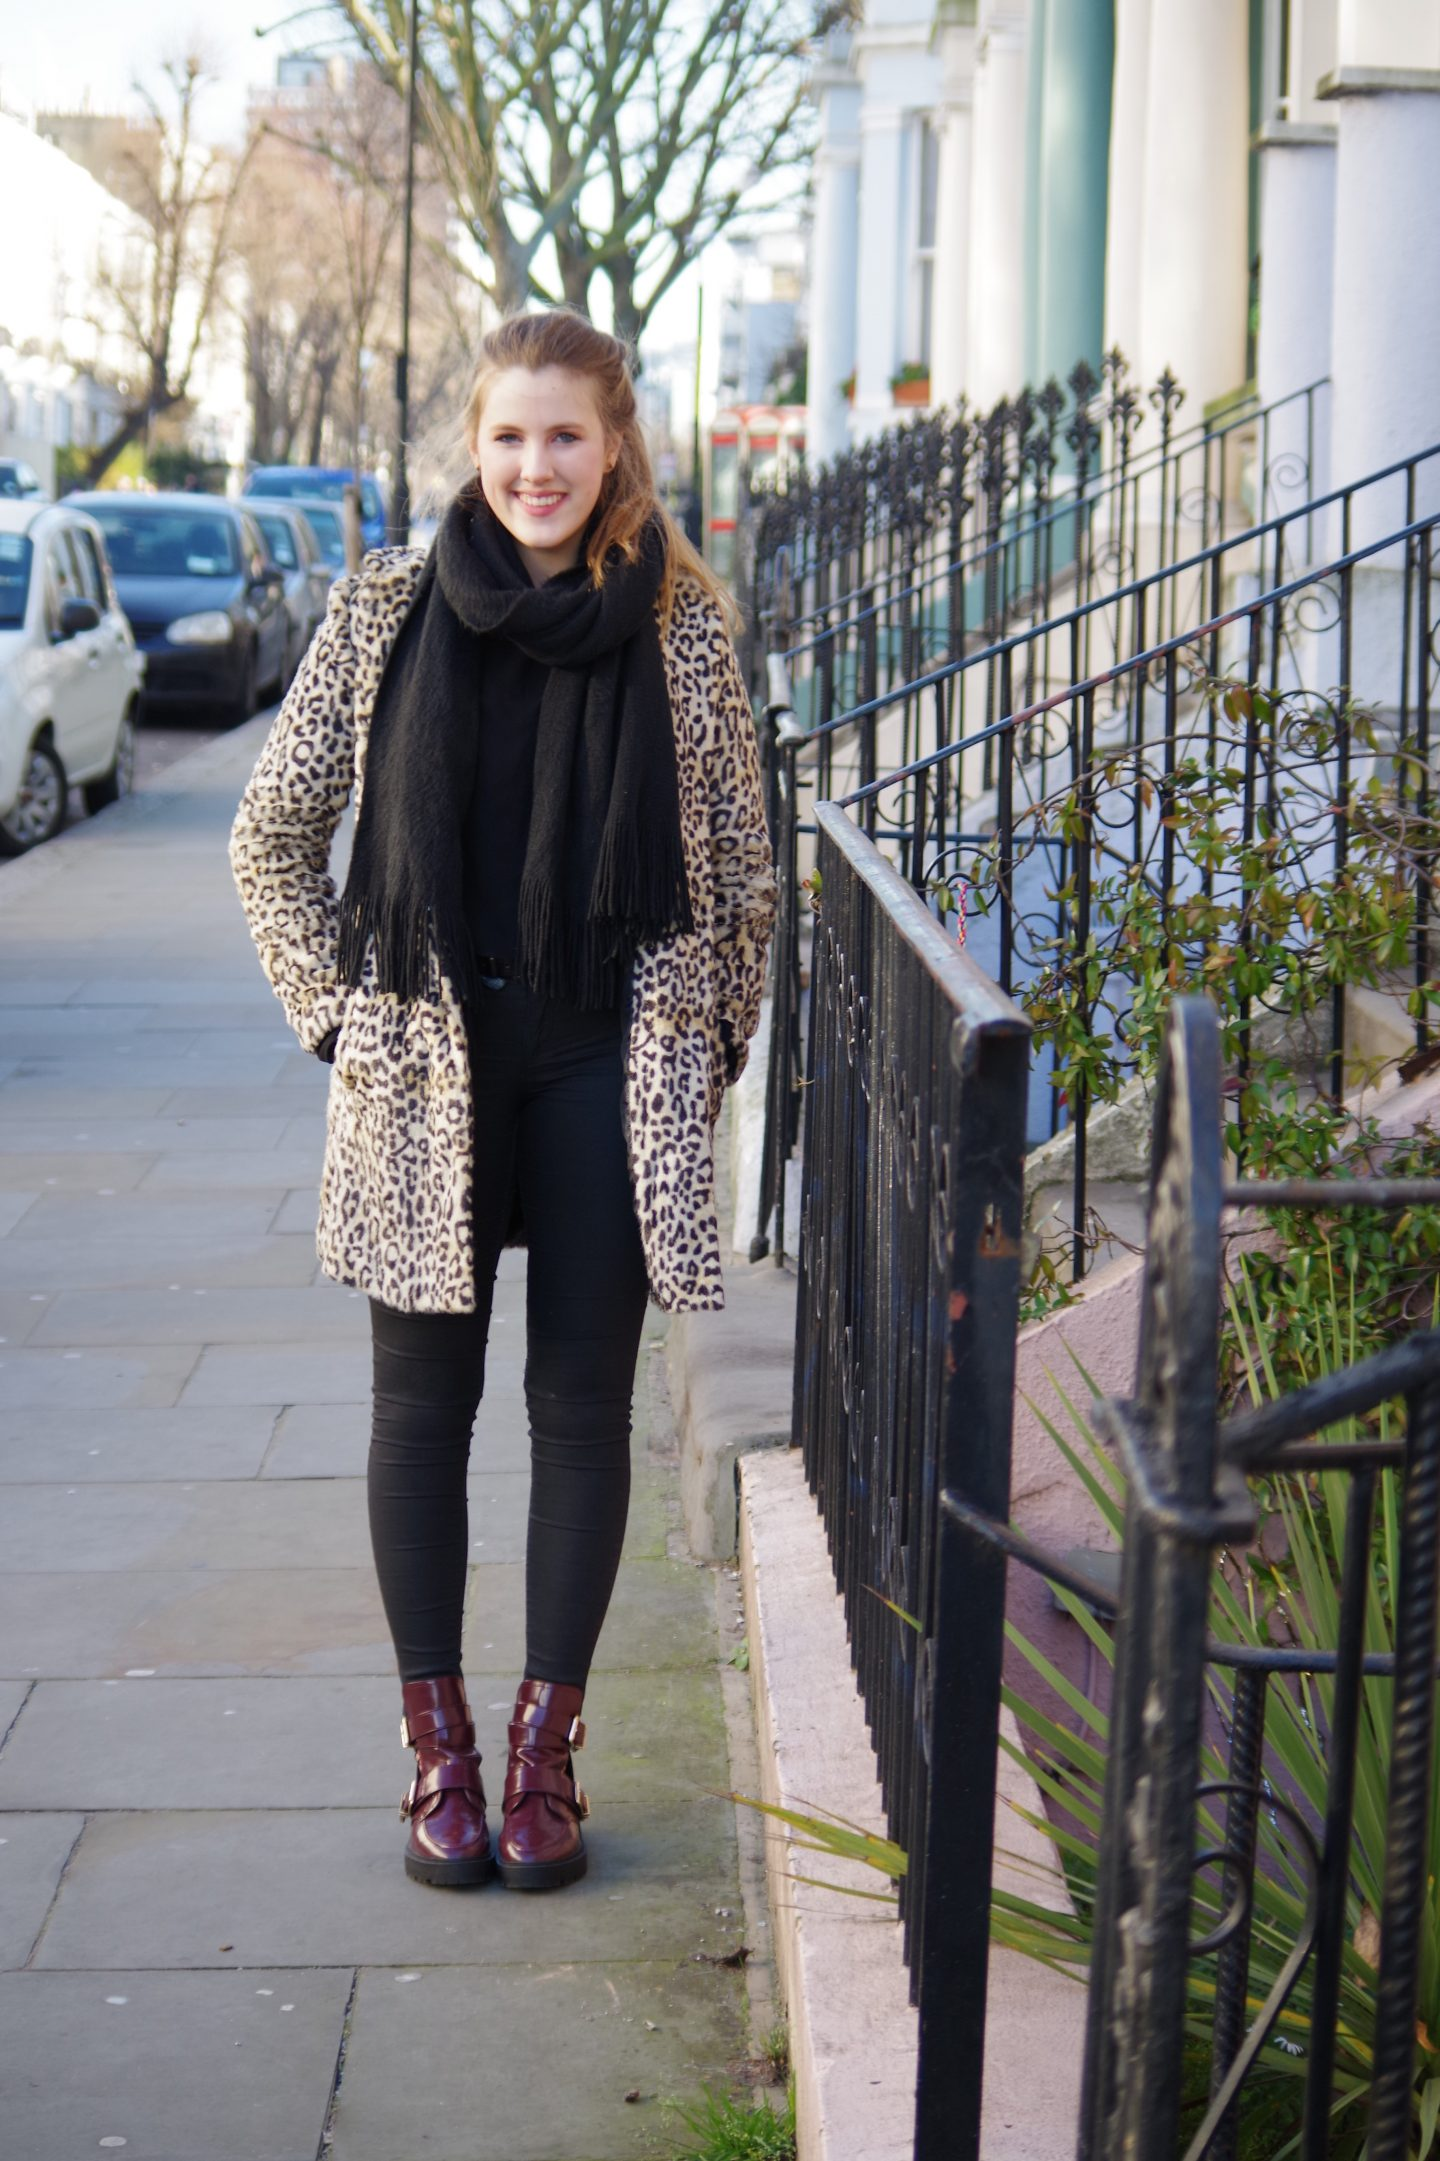 The Leopard Coat |Notting Hill